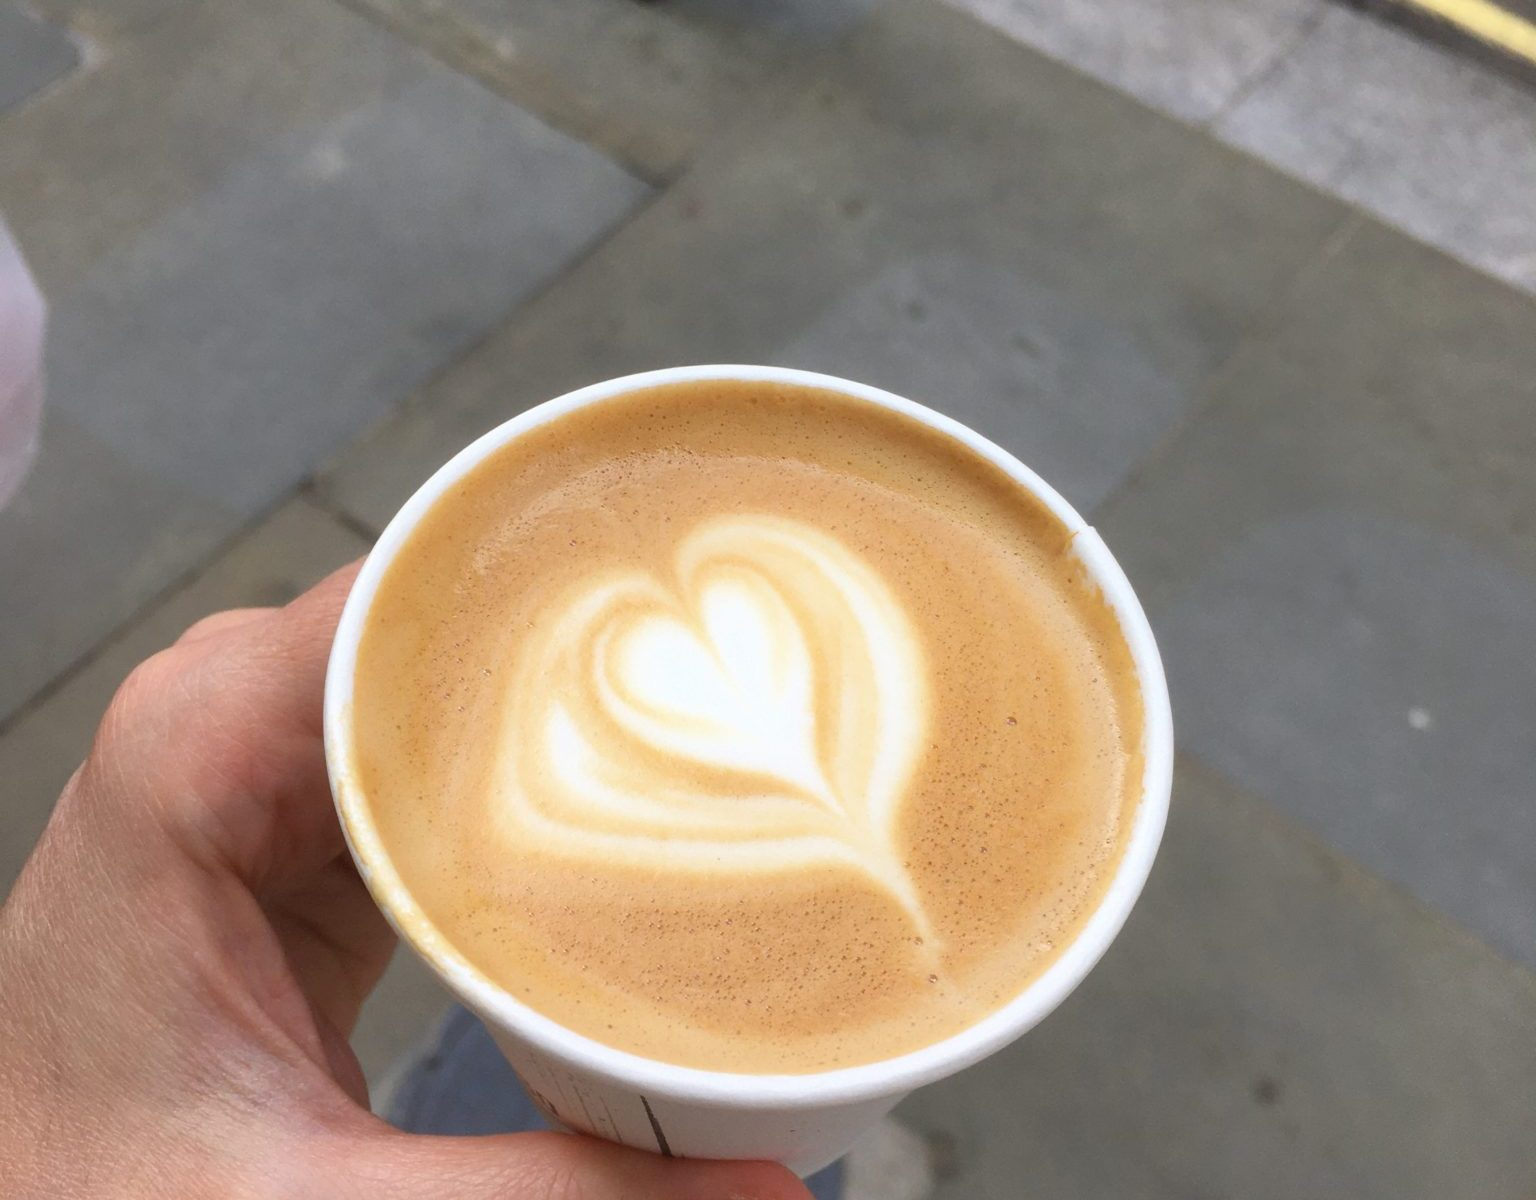 My first flat white in more than three months